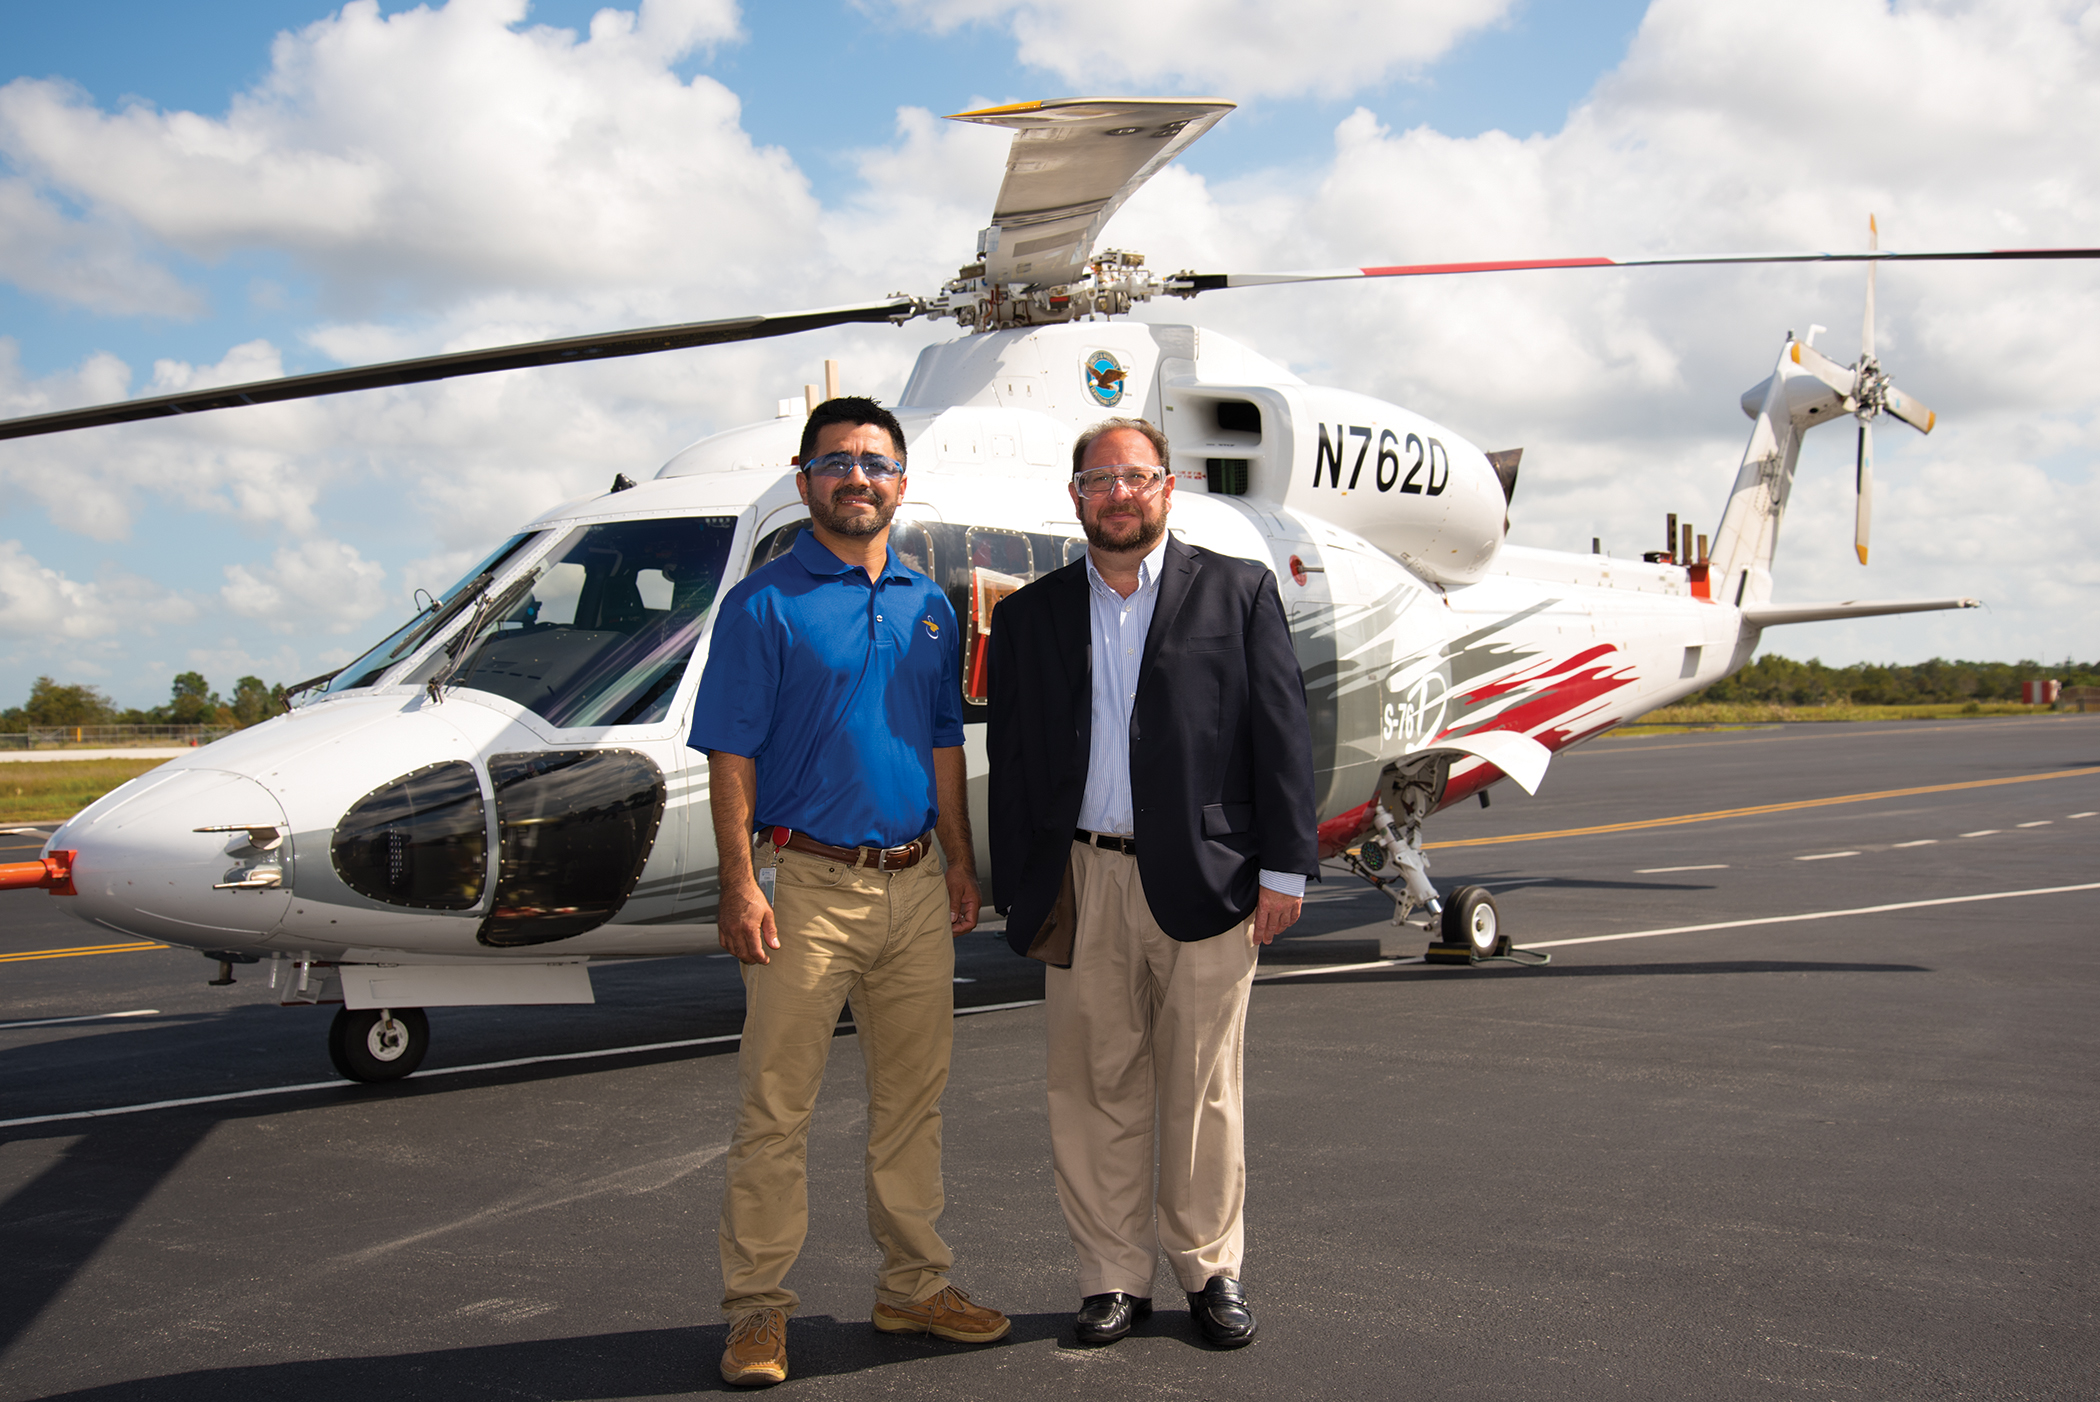 Edwin Carranza (left) and John Fischetti in front of the S-76D™ helicopter